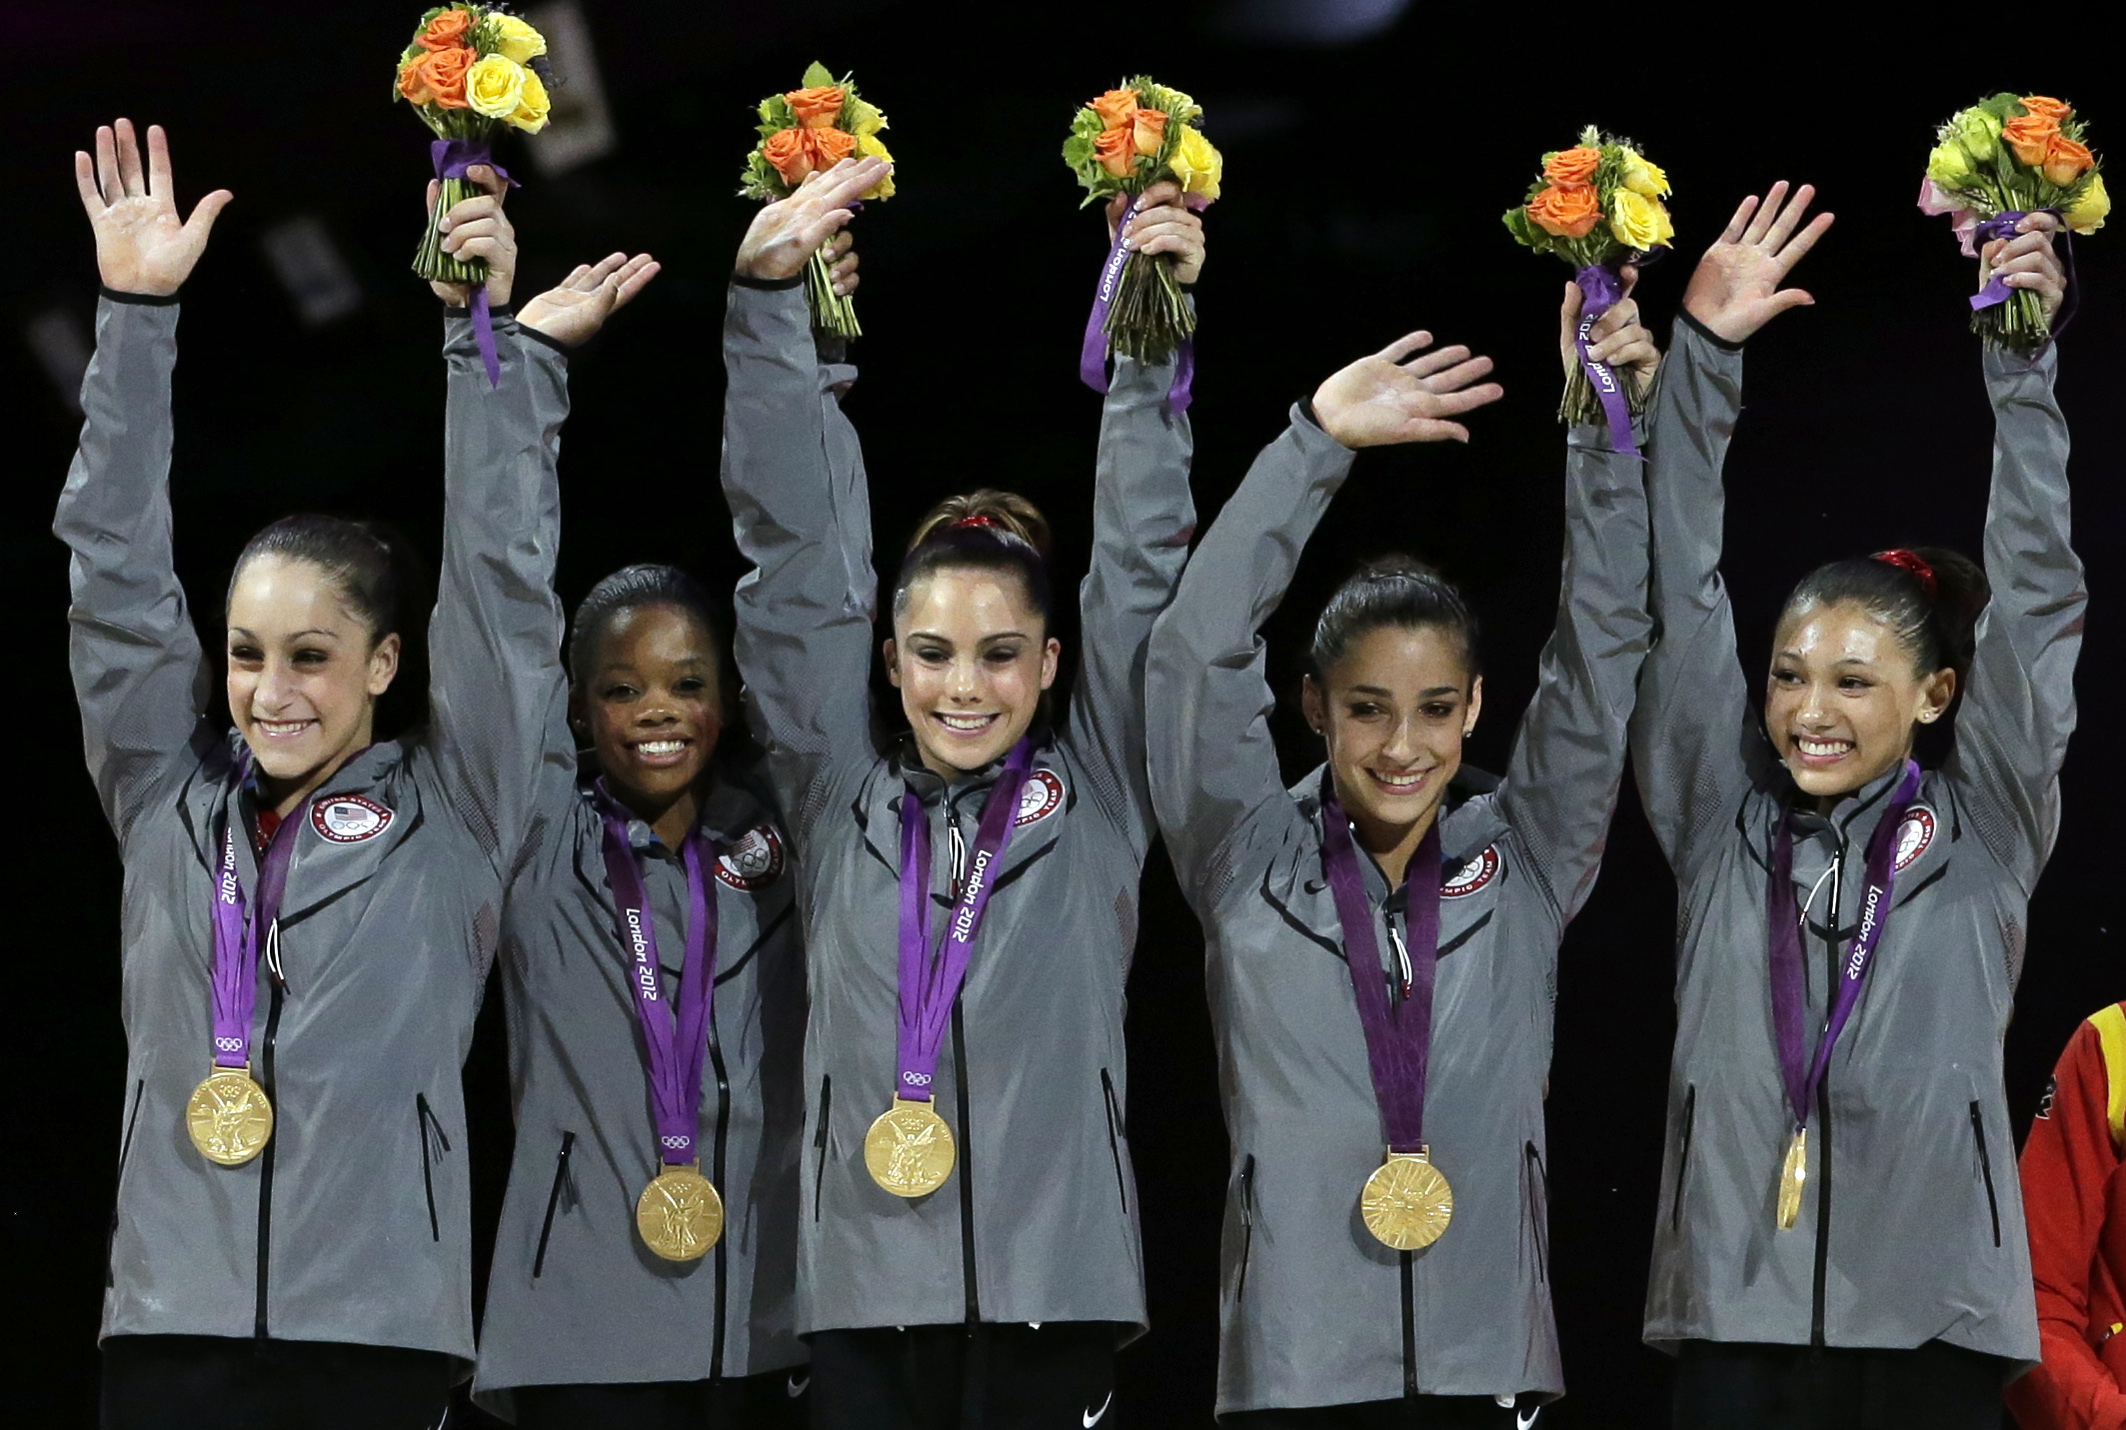 FILE - In this July 31, 2012, file photo, U.S. gymnasts, left to right, Jordyn Wieber, Gabrielle Douglas, McKayla Maroney, Alexandra Raisman and Kyla Ross raise their hands on the podium during the medal ceremony for the Artistic Gymnastic women's team fi